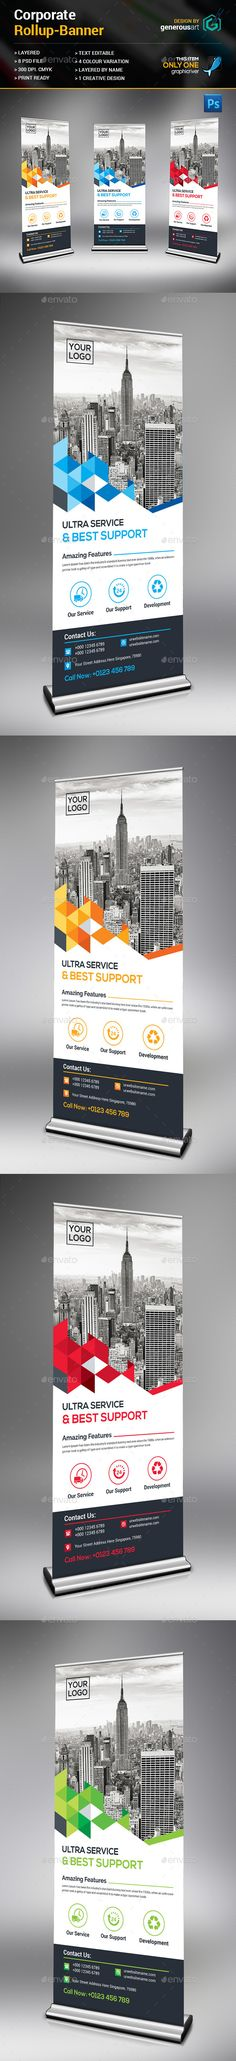 Corporate Rollup Banner Template PSD. Download here: http://graphicriver.net/item/corporate-rollup-banner/15399823?ref=ksioks